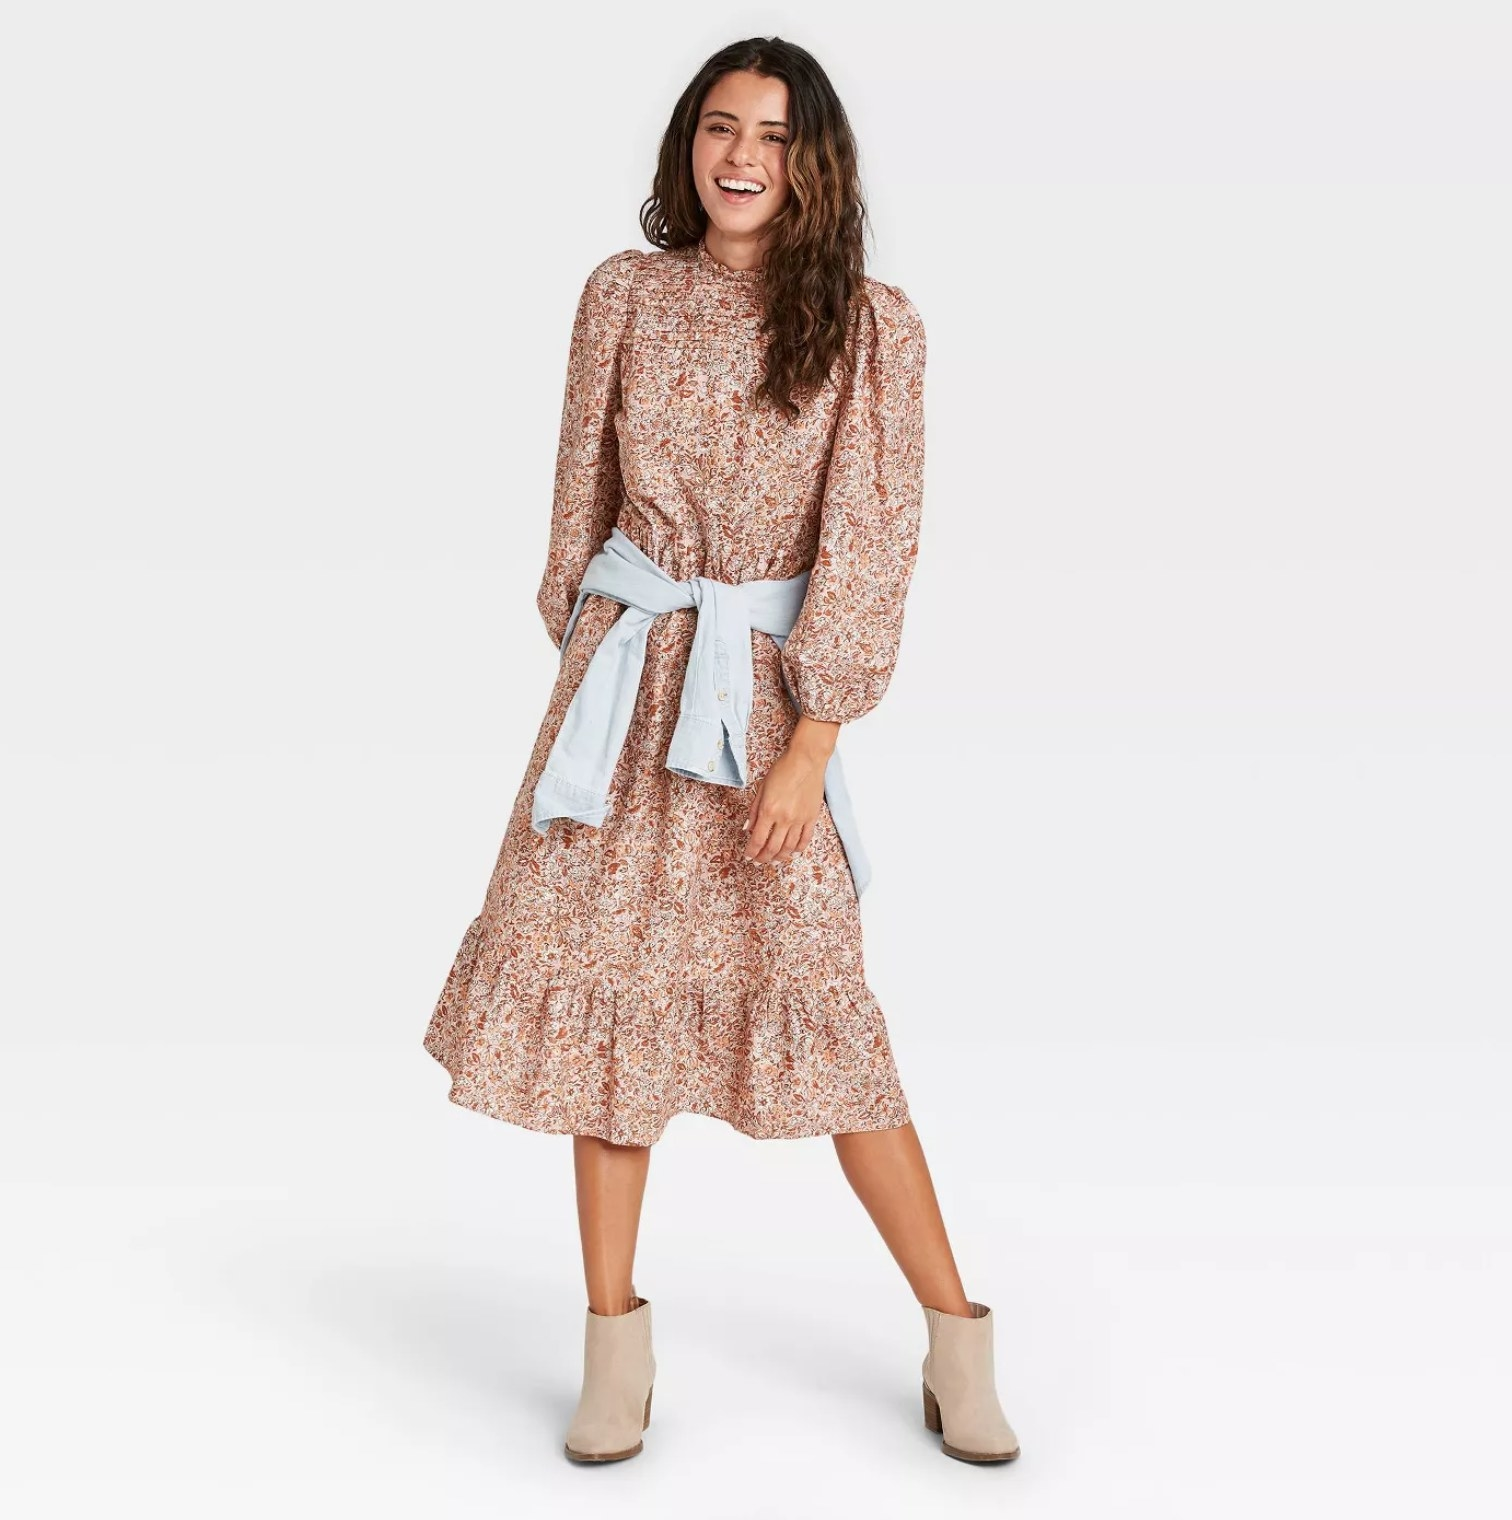 Model wearing the dress in floral pink with denim wrapped jacket wrapped around their waist